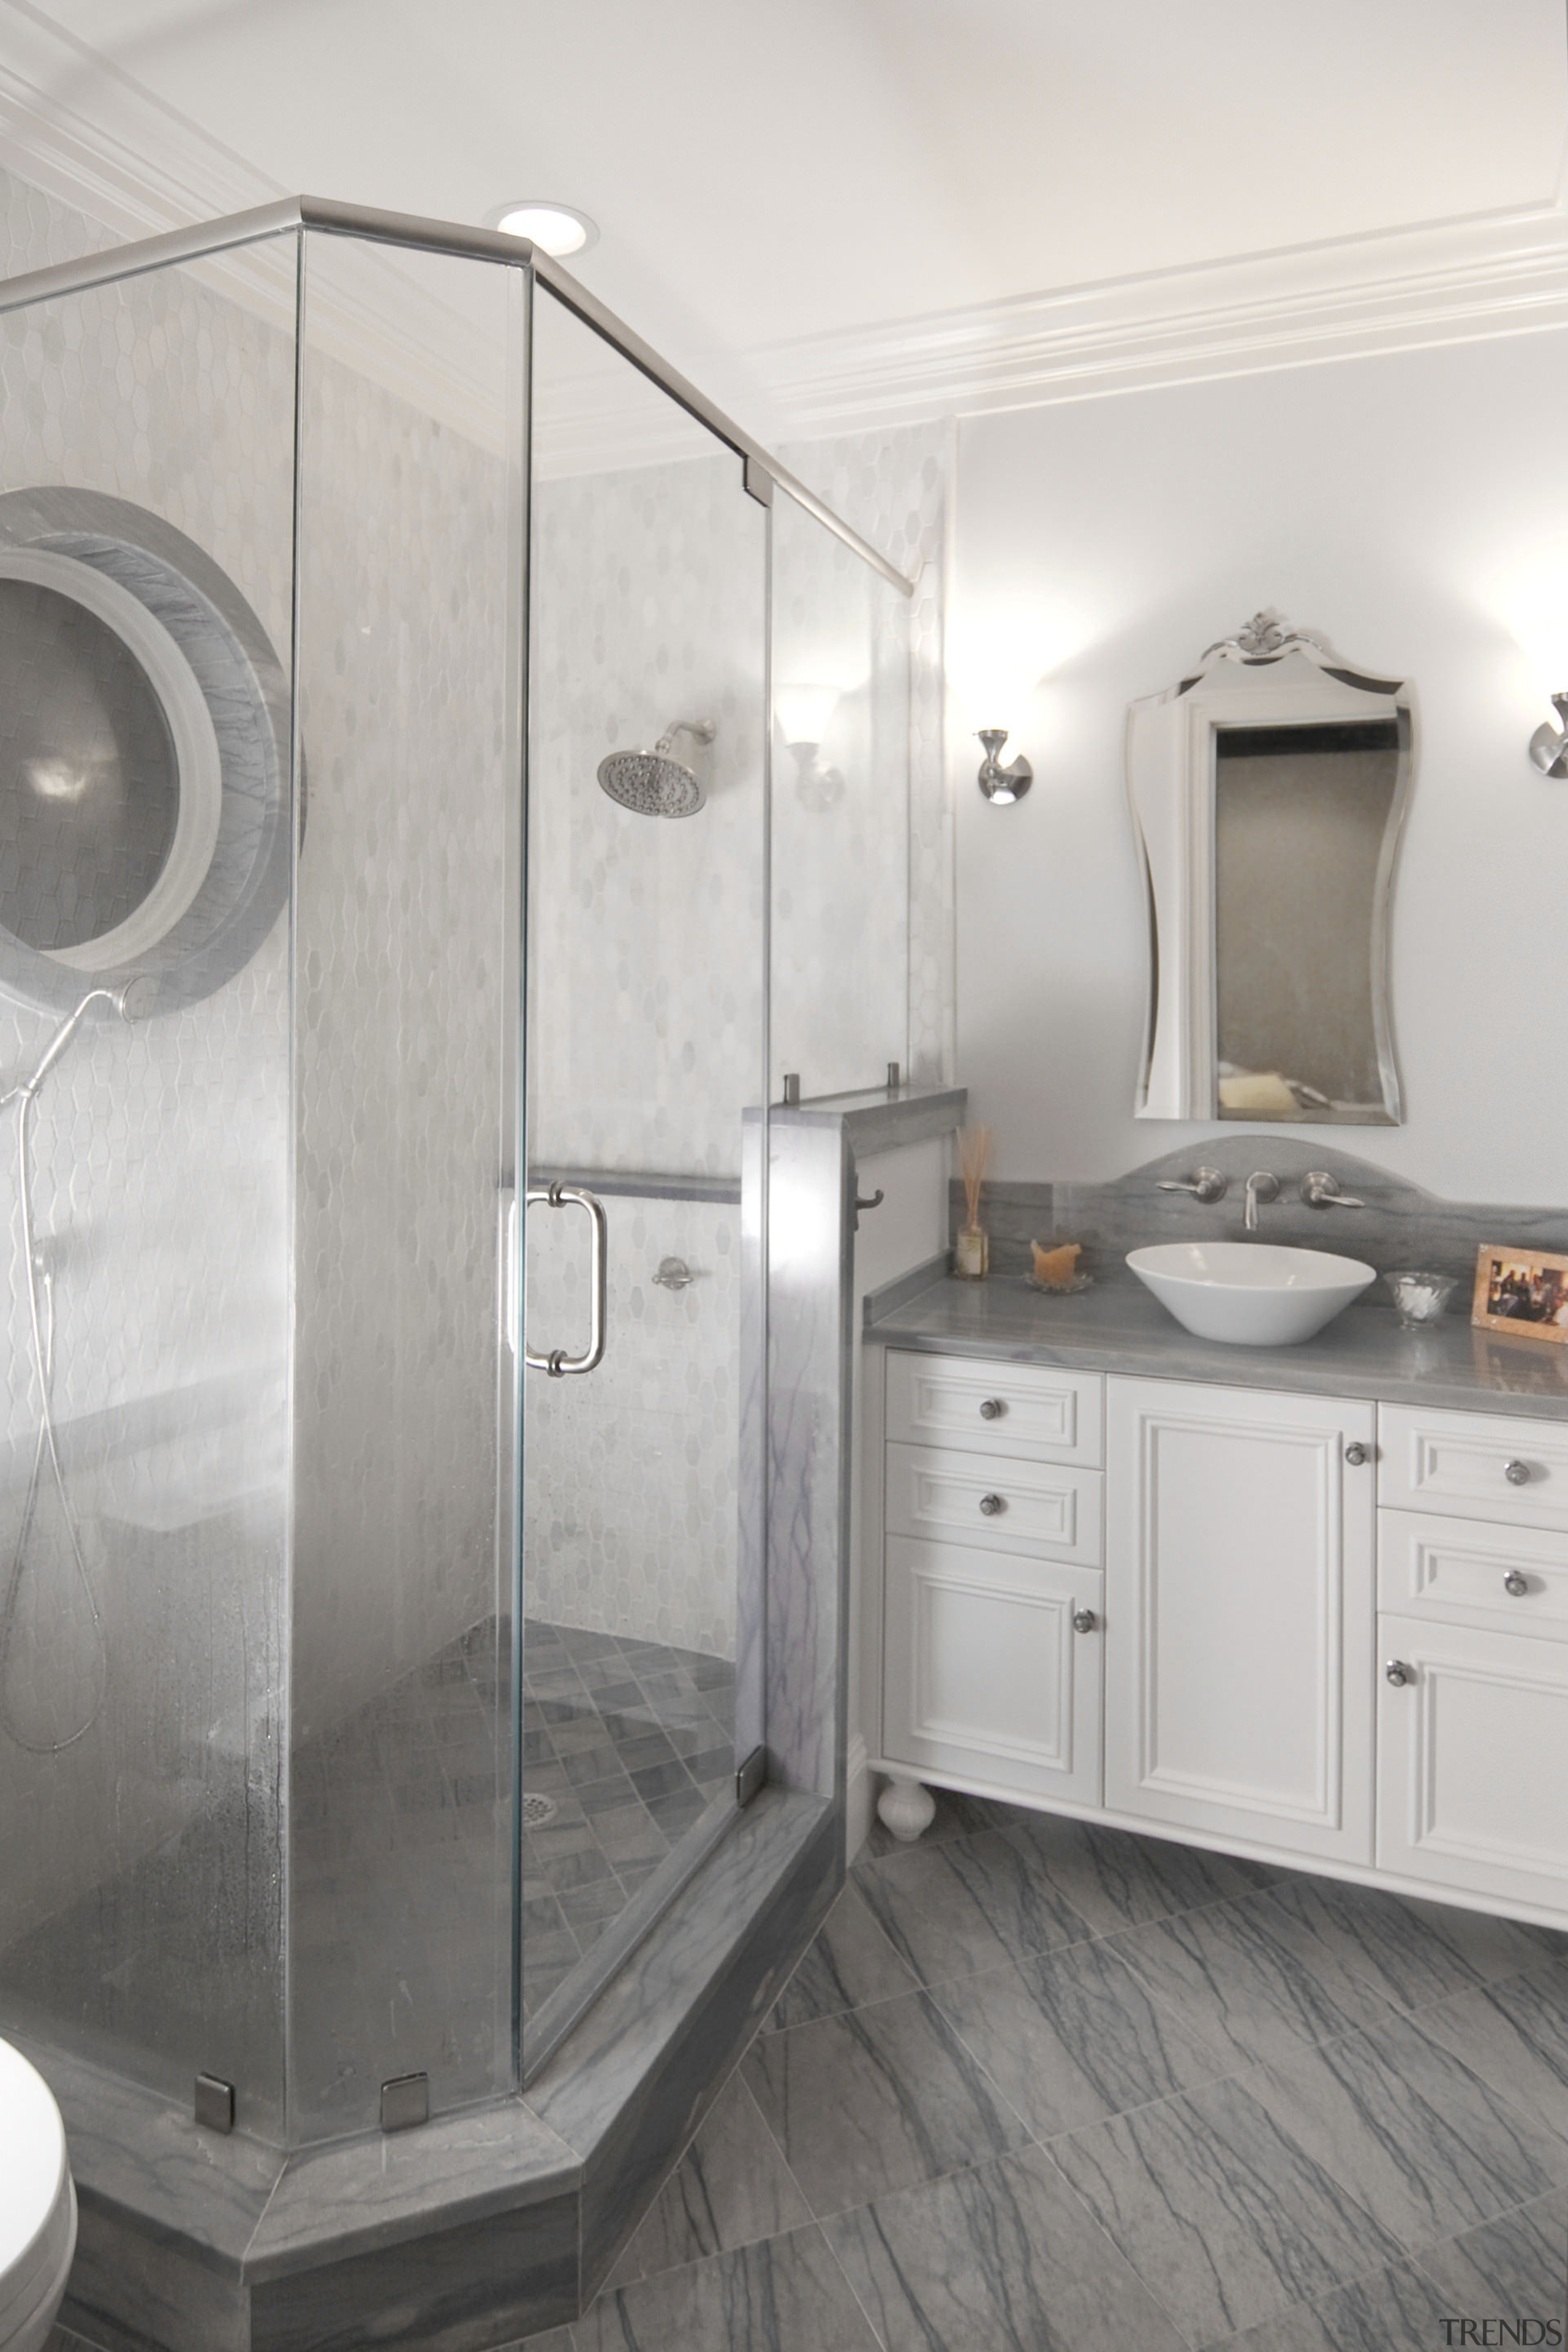 This bathroom by Cheryl Kees Clendenon manipulates color, bathroom, interior design, plumbing fixture, room, white, gray